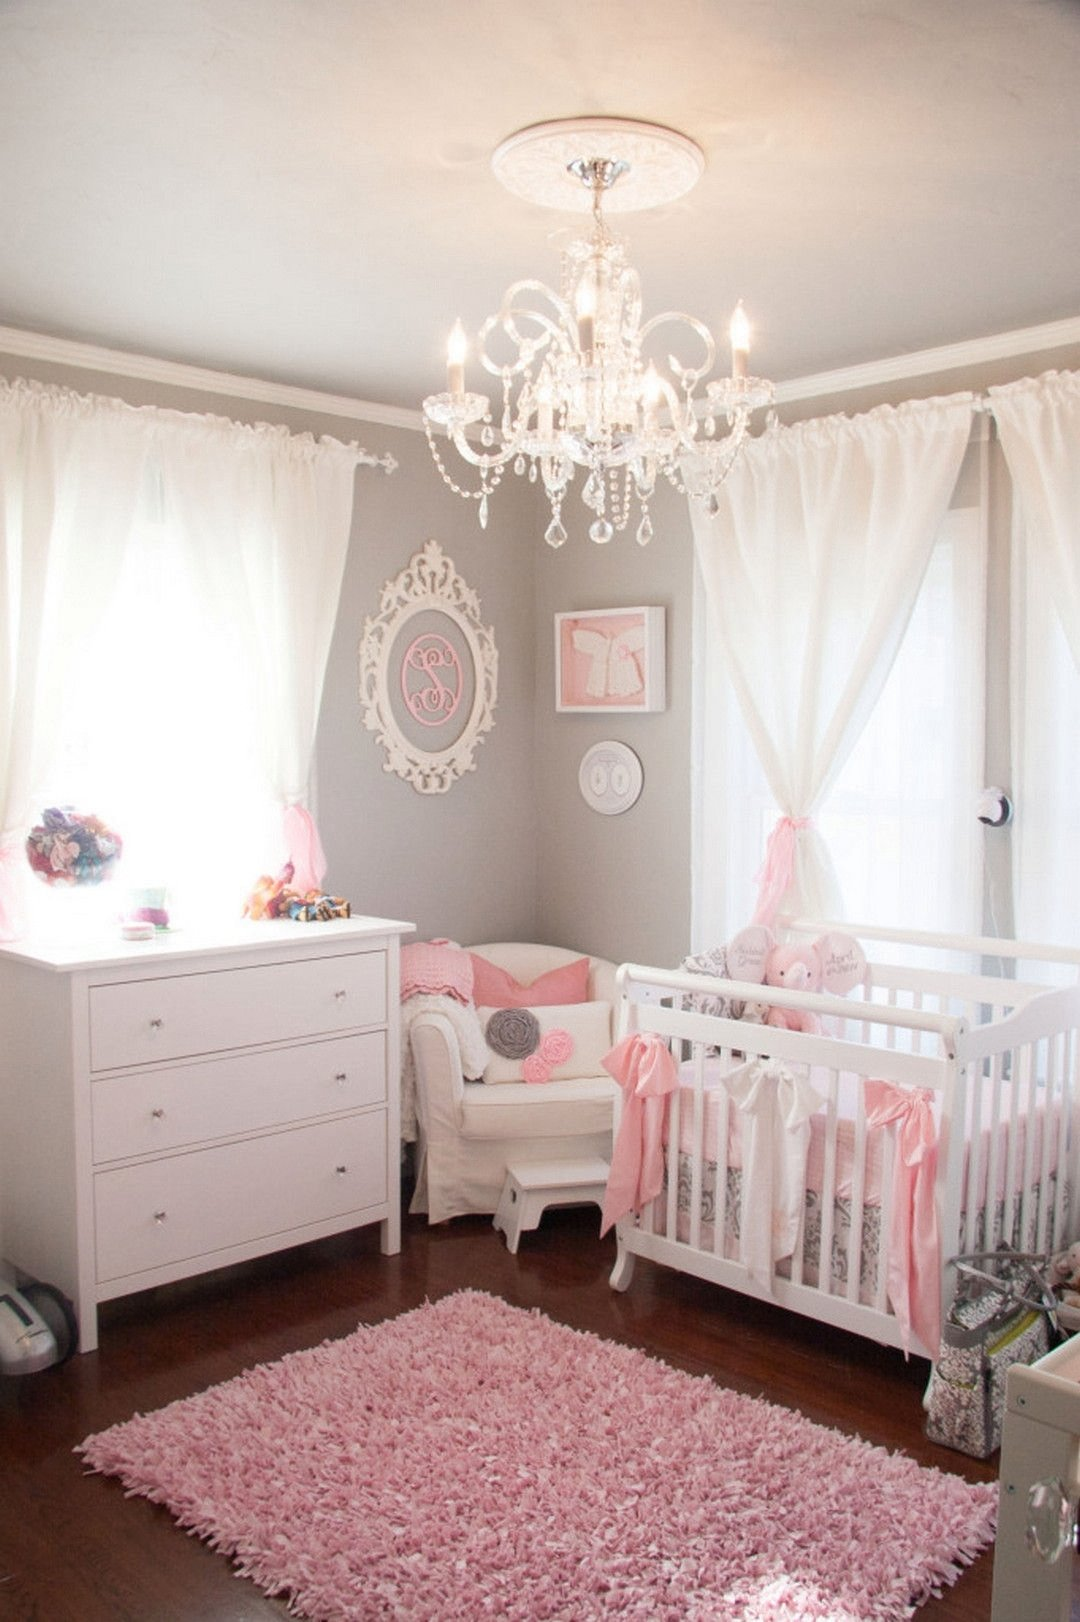 10 Spectacular Cute Baby Girl Picture Ideas 6 actionable tips on baby girl nursery nursery babies and girls 6 2021